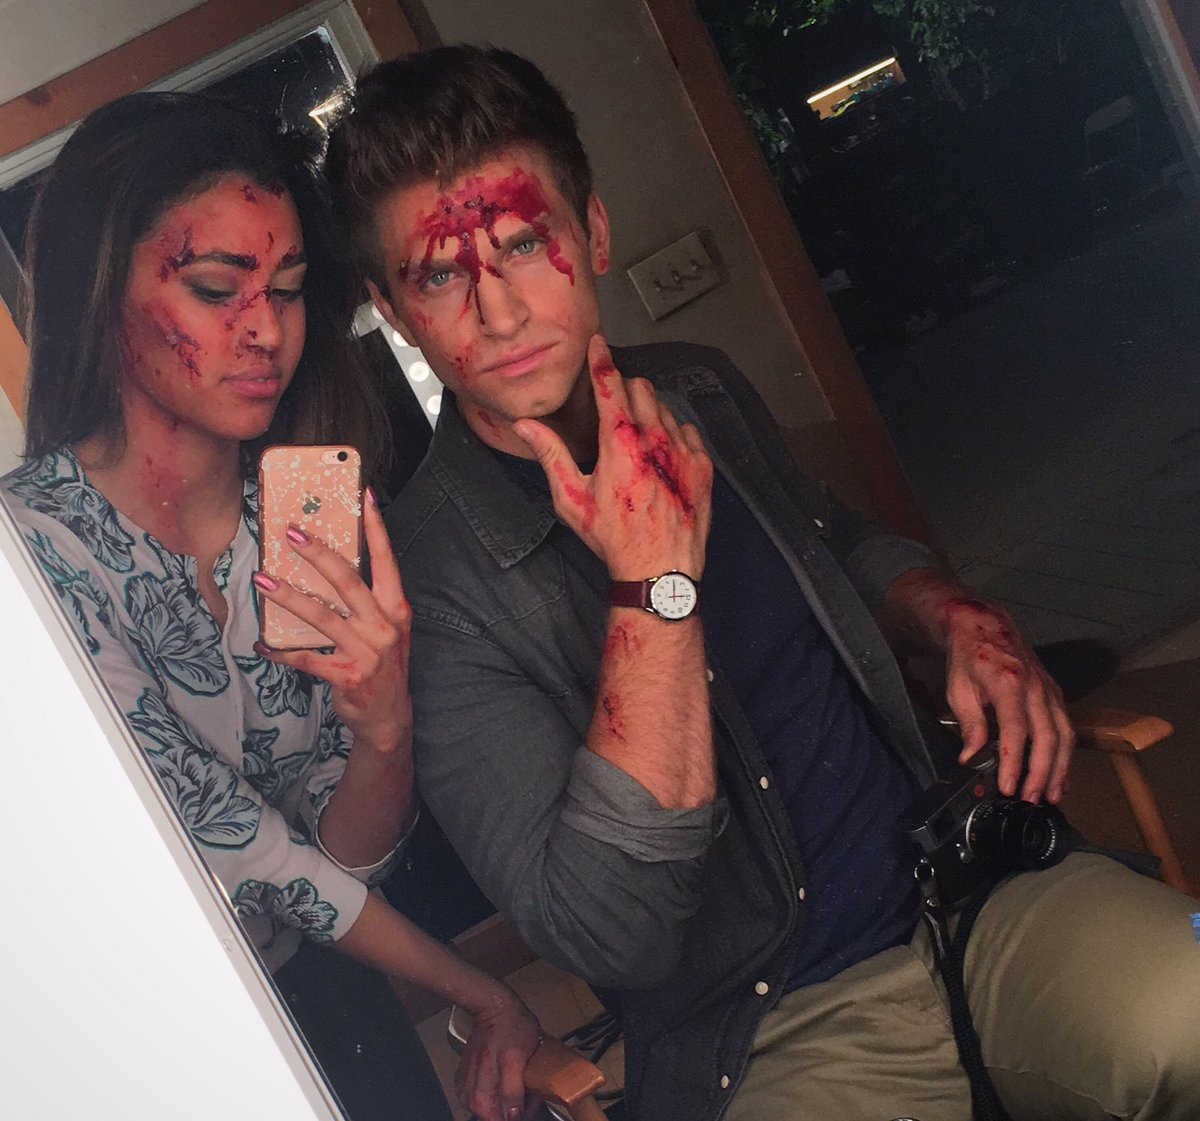 Kara Royster as Yvonne and Keegan Allen as Toby on Pretty Little Liars